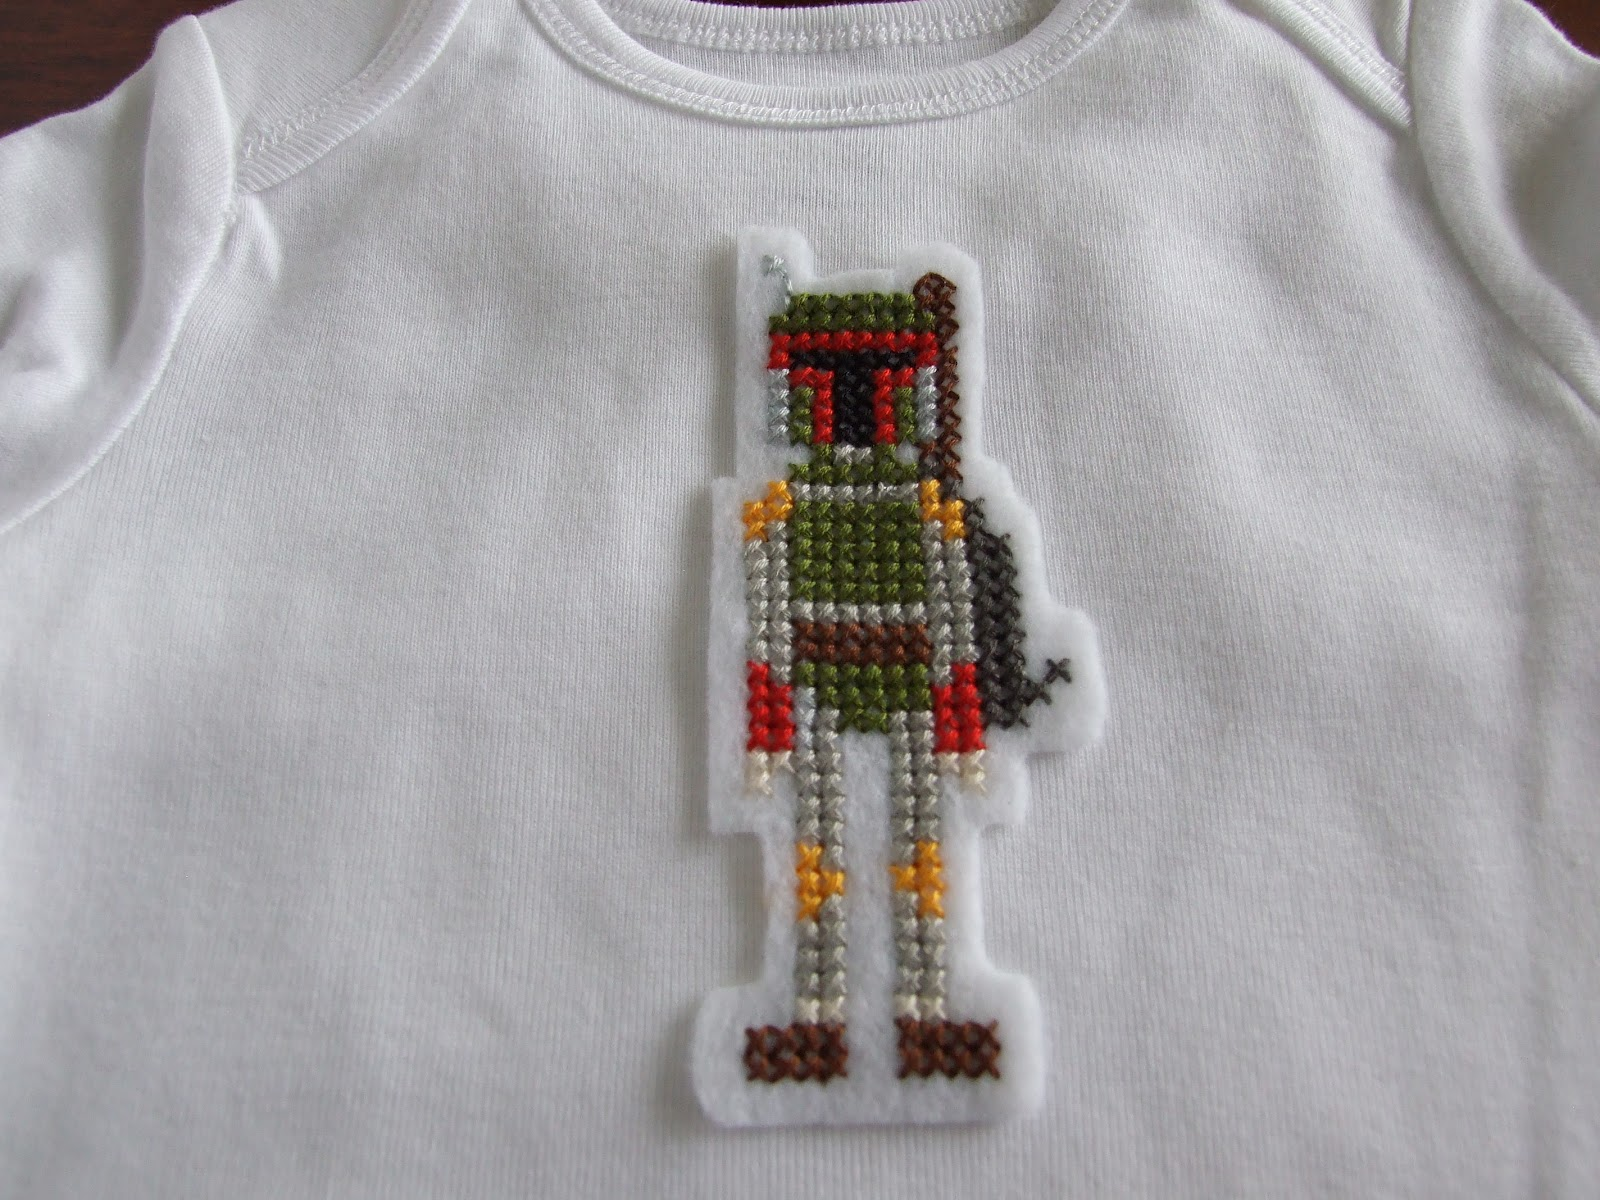 A Few Simple Running Stitches Will Attach Boba Fett To Any Item